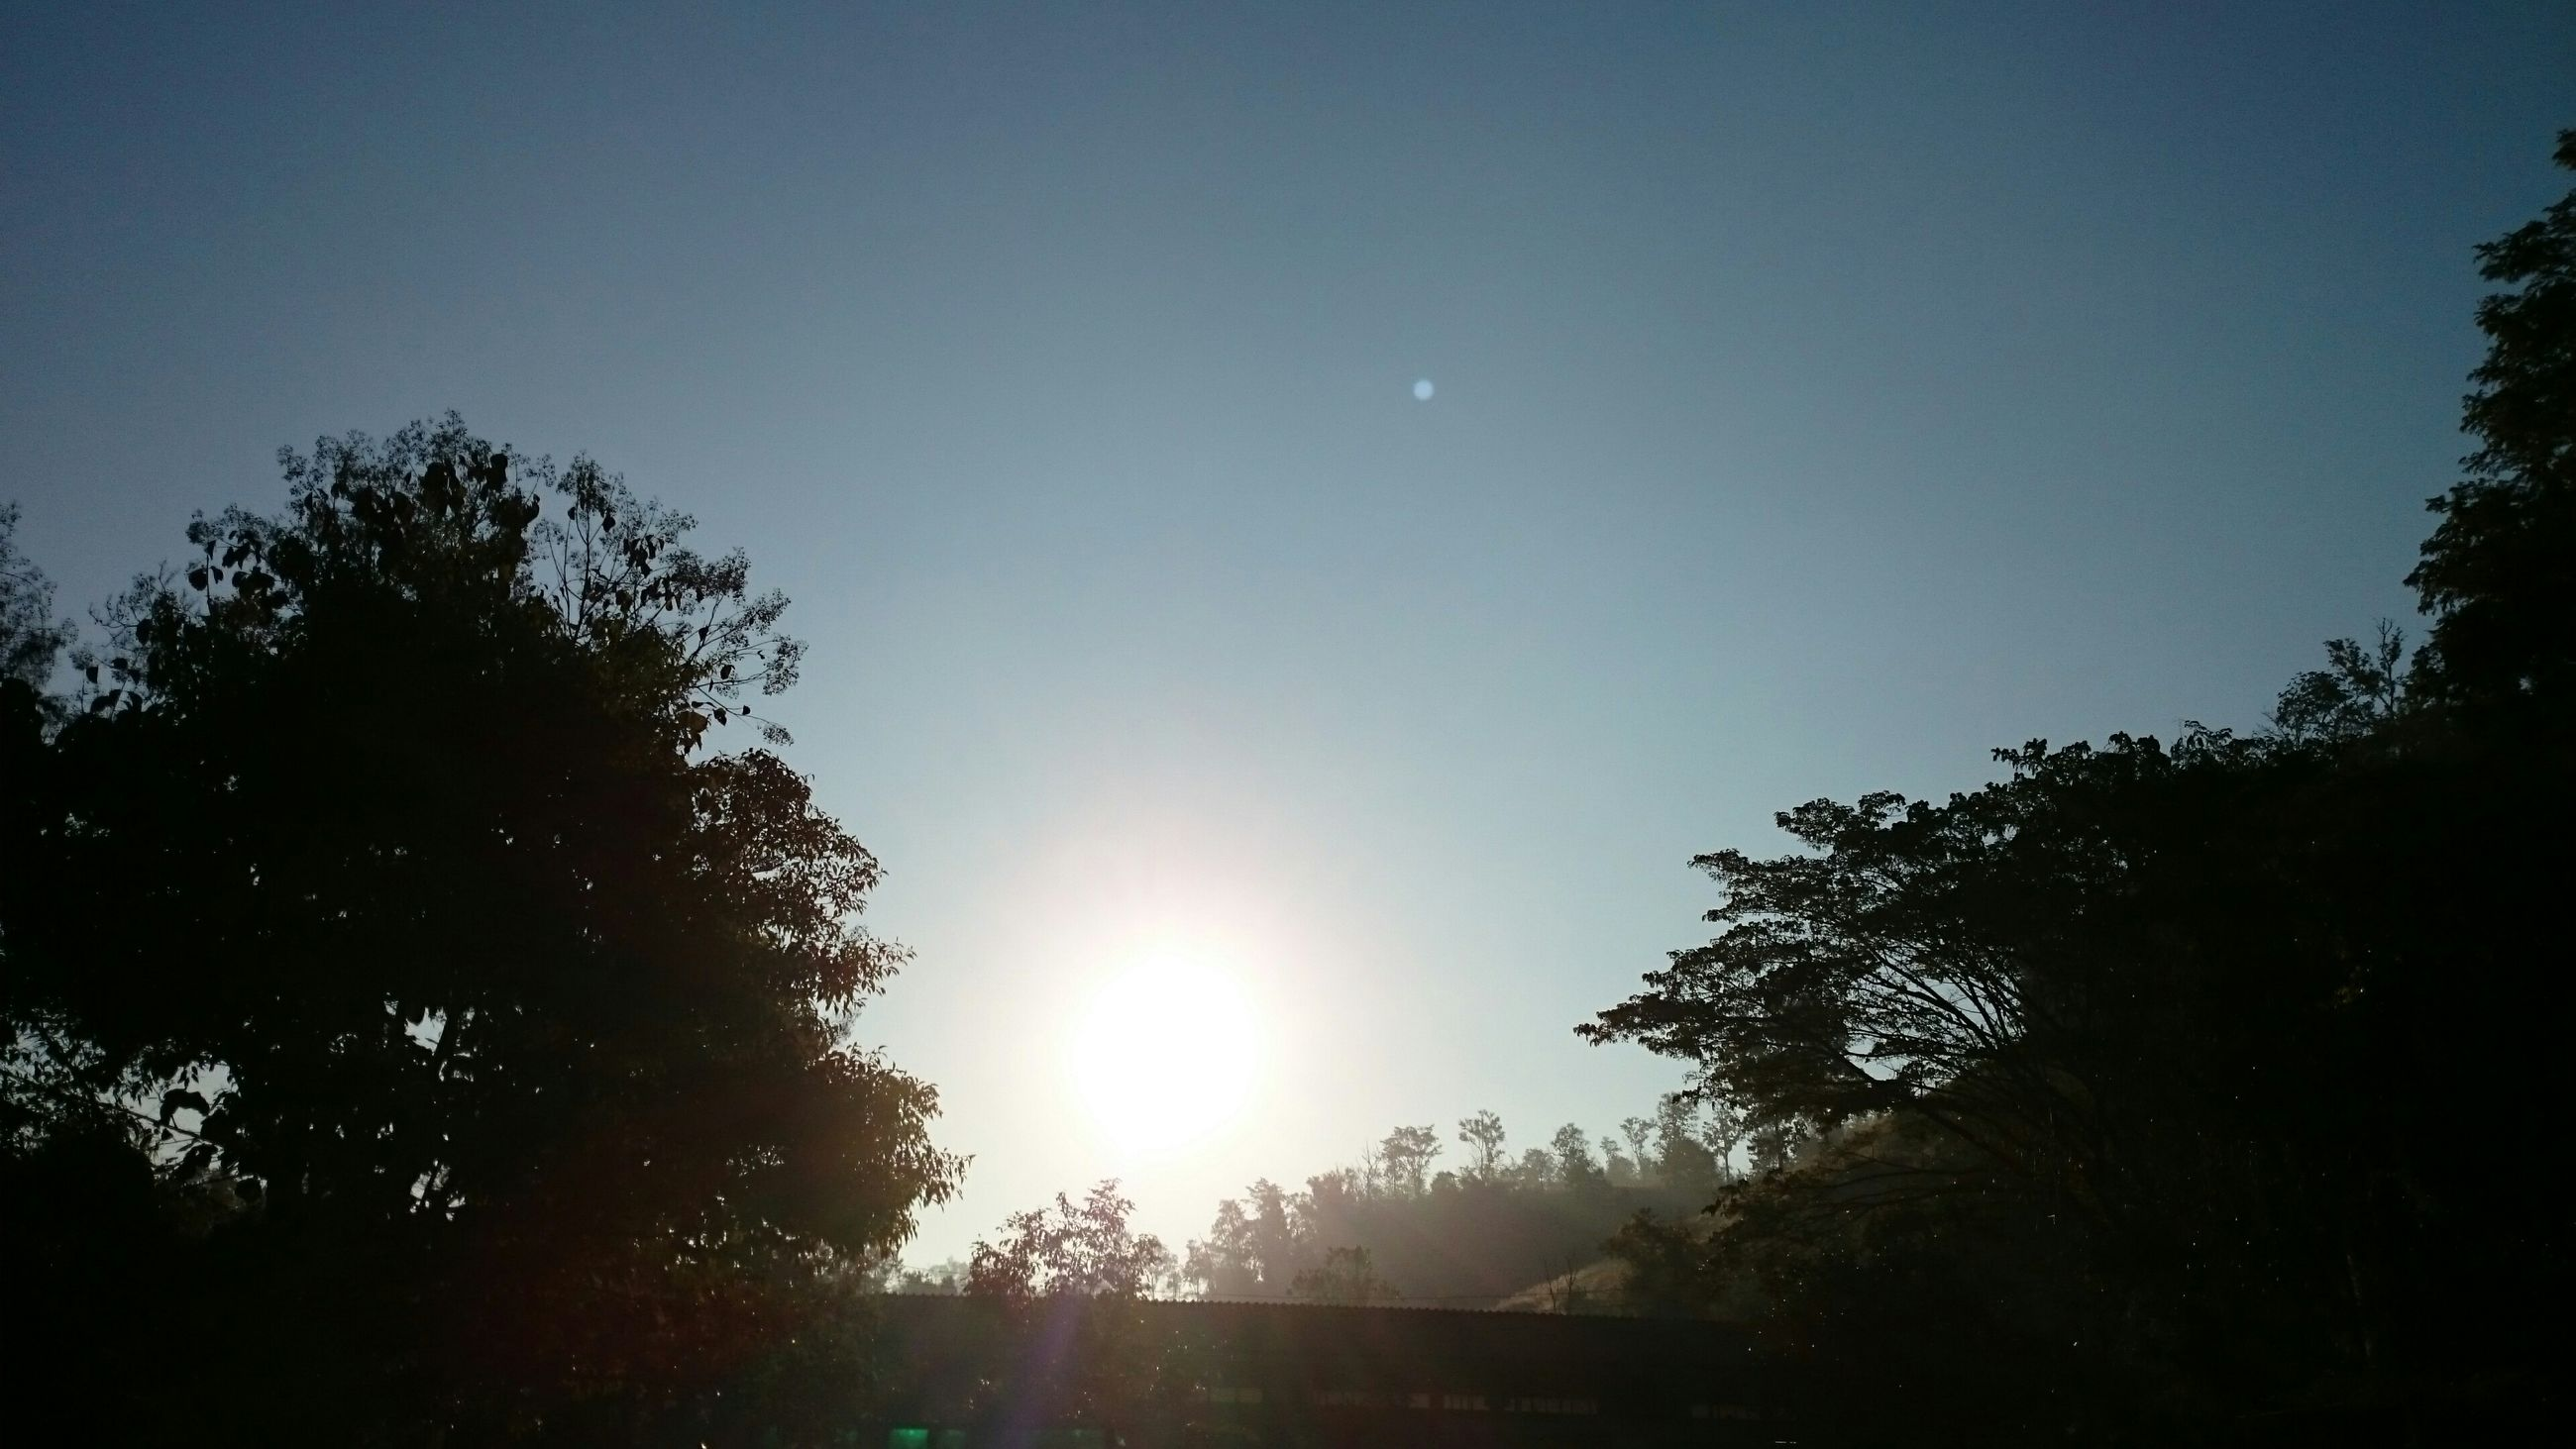 sun, tree, clear sky, sunbeam, sunlight, lens flare, tranquility, beauty in nature, silhouette, tranquil scene, scenics, nature, copy space, blue, low angle view, growth, bright, sky, sunny, idyllic